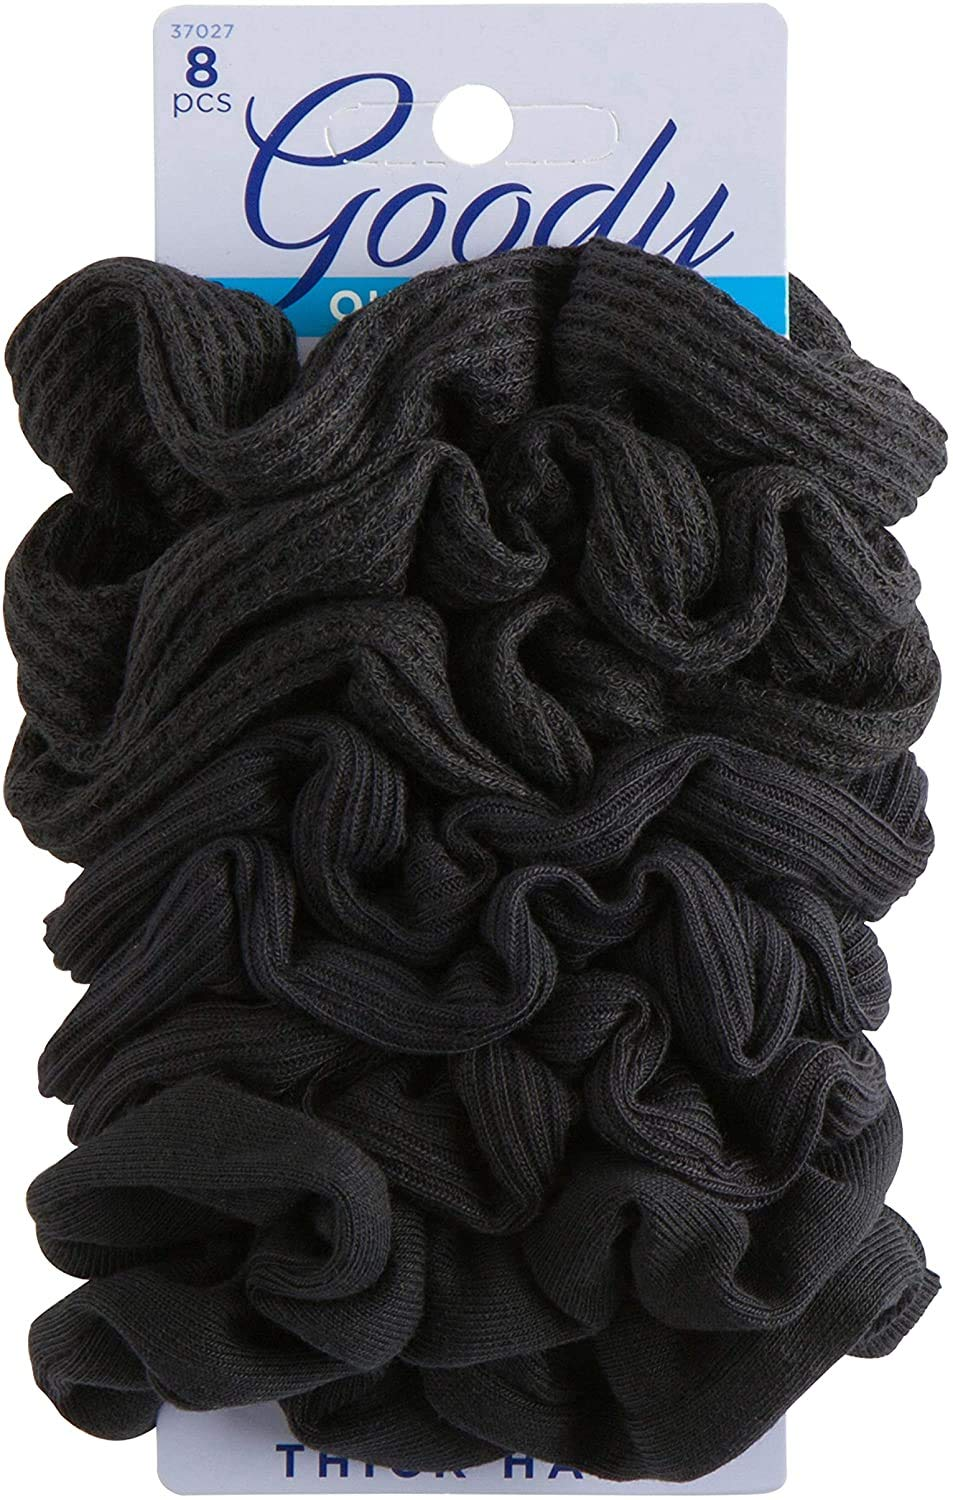 GOODY Hair Ouchless Painfree Women's Hair Scrunchie, Black, 8 Count